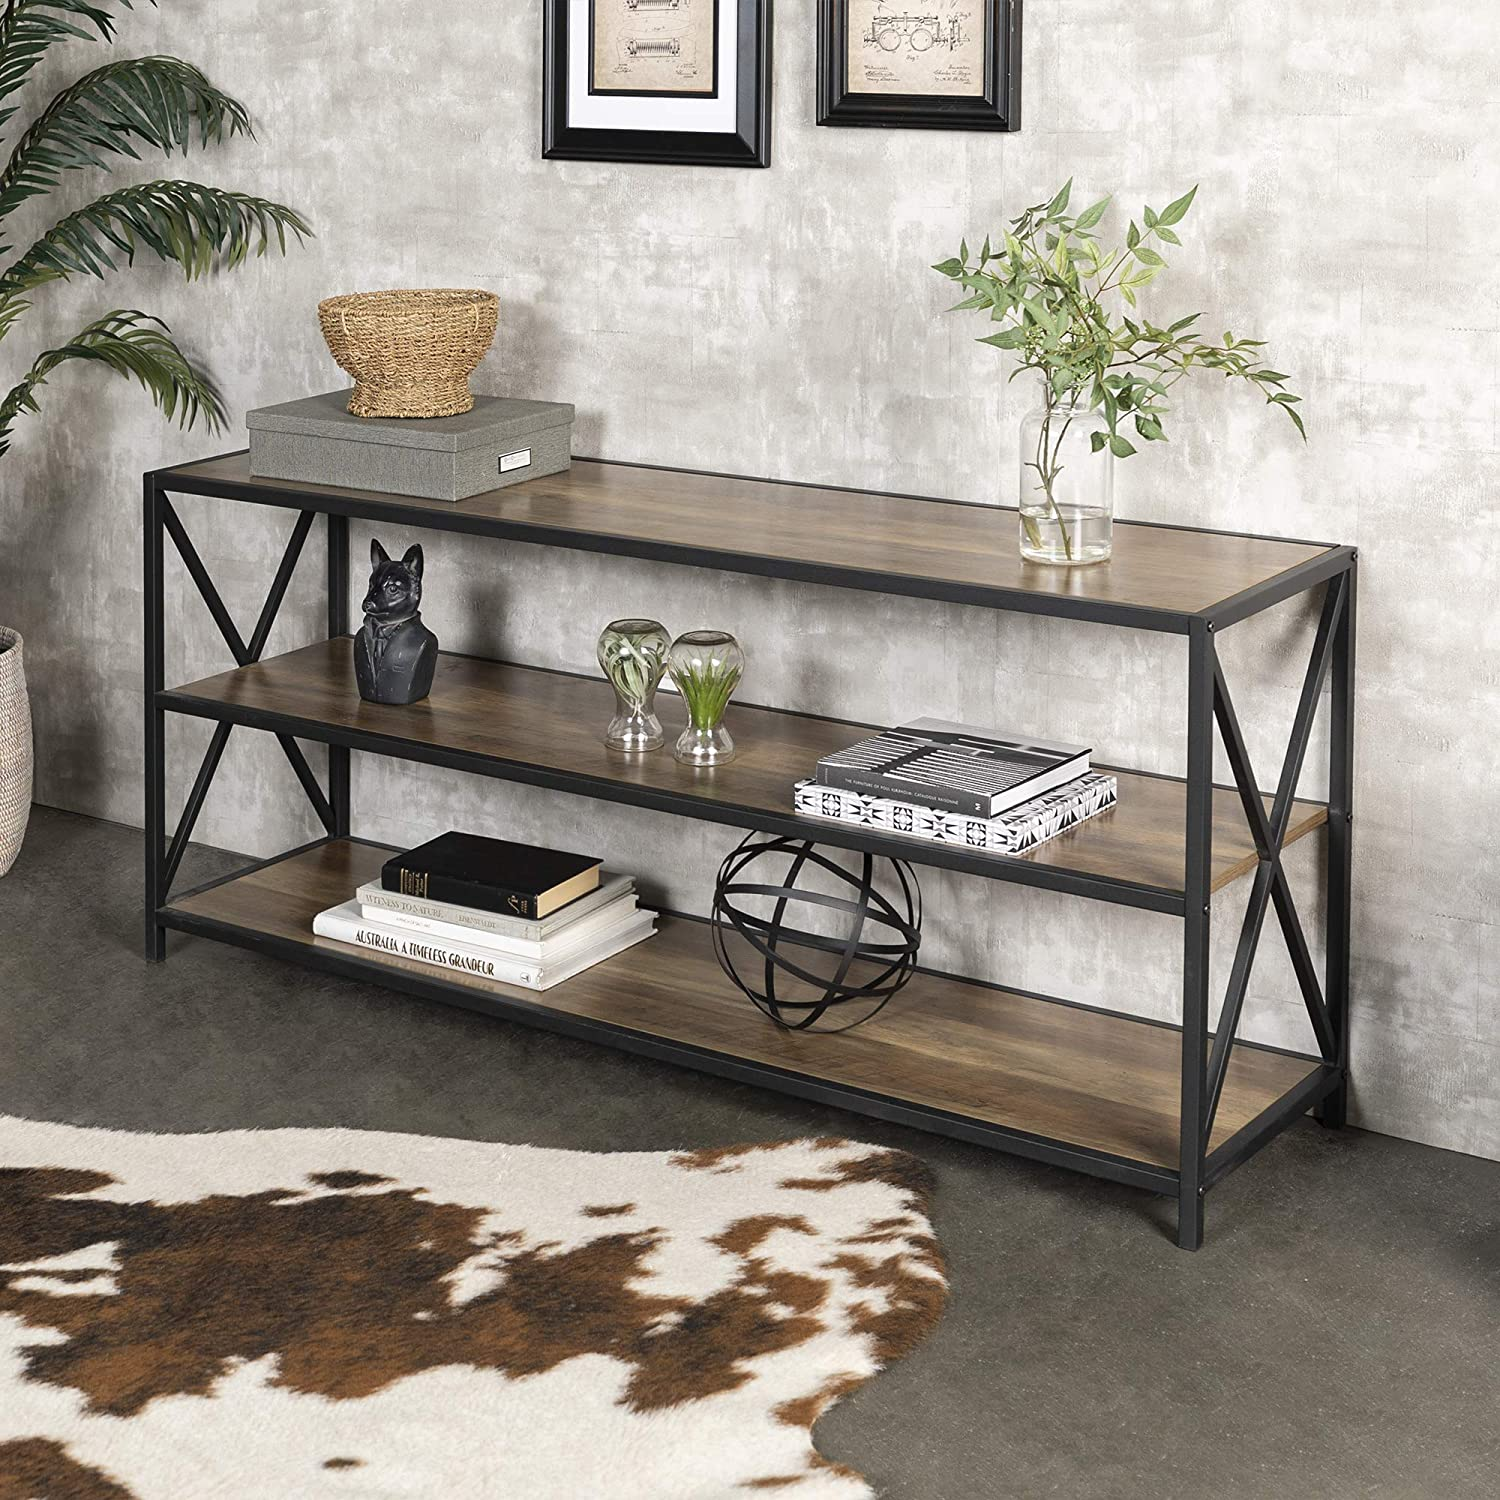 "WE Furniture 60"" Wood Tall Entryway Table TV Stand Console 3 Tier Console Table, Rustic Oak and Black Metal Bookshelf Sofa Table for Living Room"